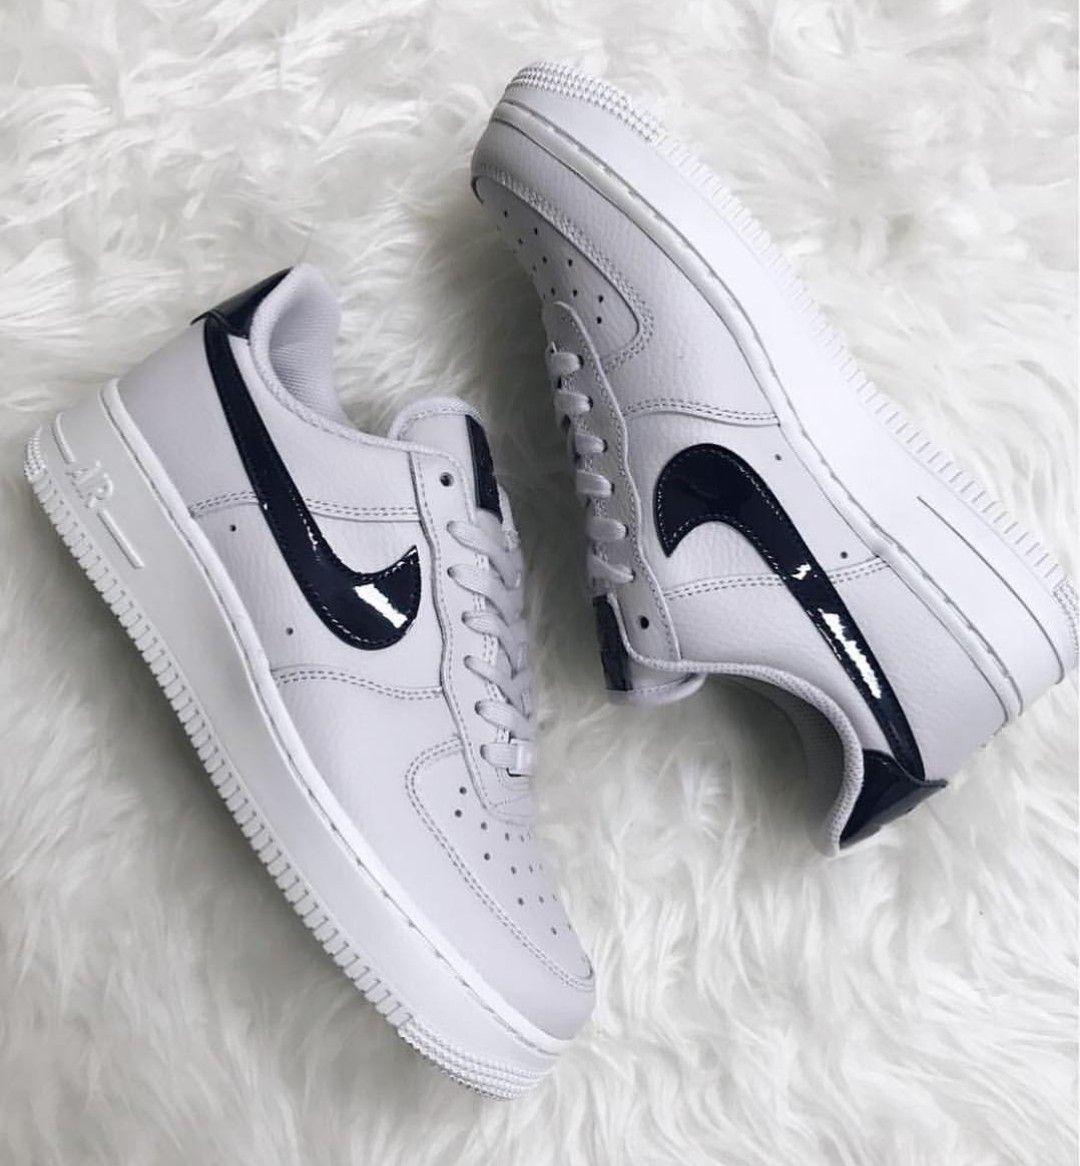 new arrival c7e12 4e849 Nike air force 1 vast grey obsidian